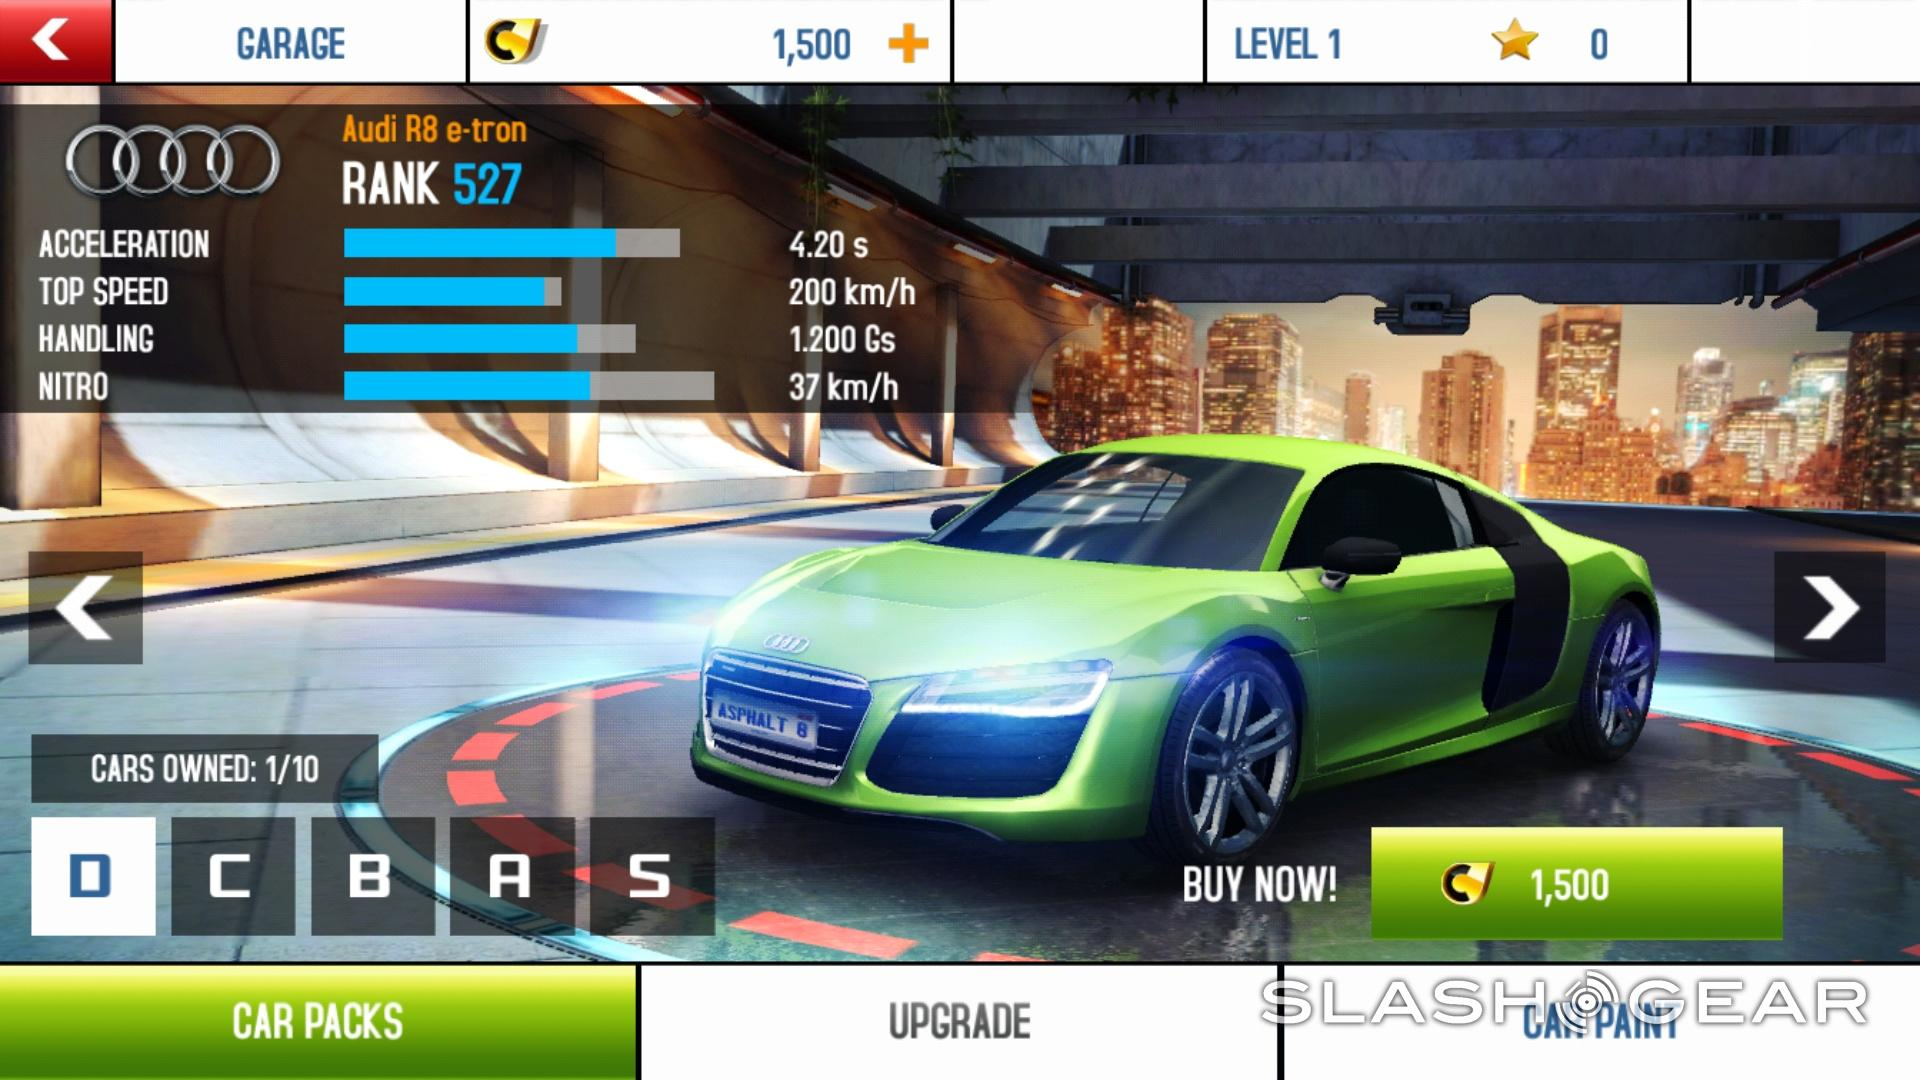 Asphalt 8: Airborne launches with NVIDIA SHIELD, Tesla Model